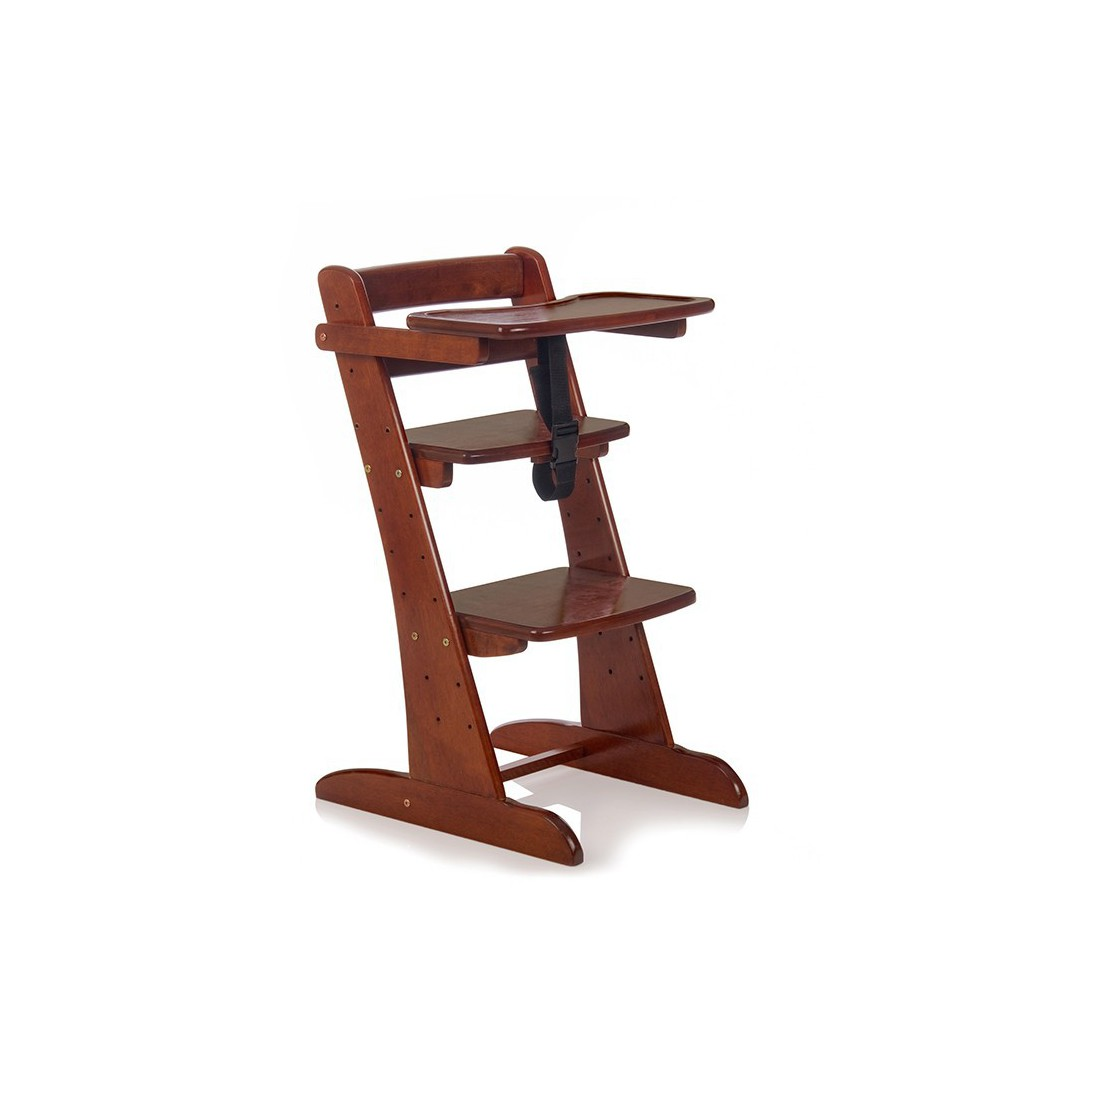 highchairs cpscgov quality hazard due classic wooden to recalls graco chair dogs wood fall high